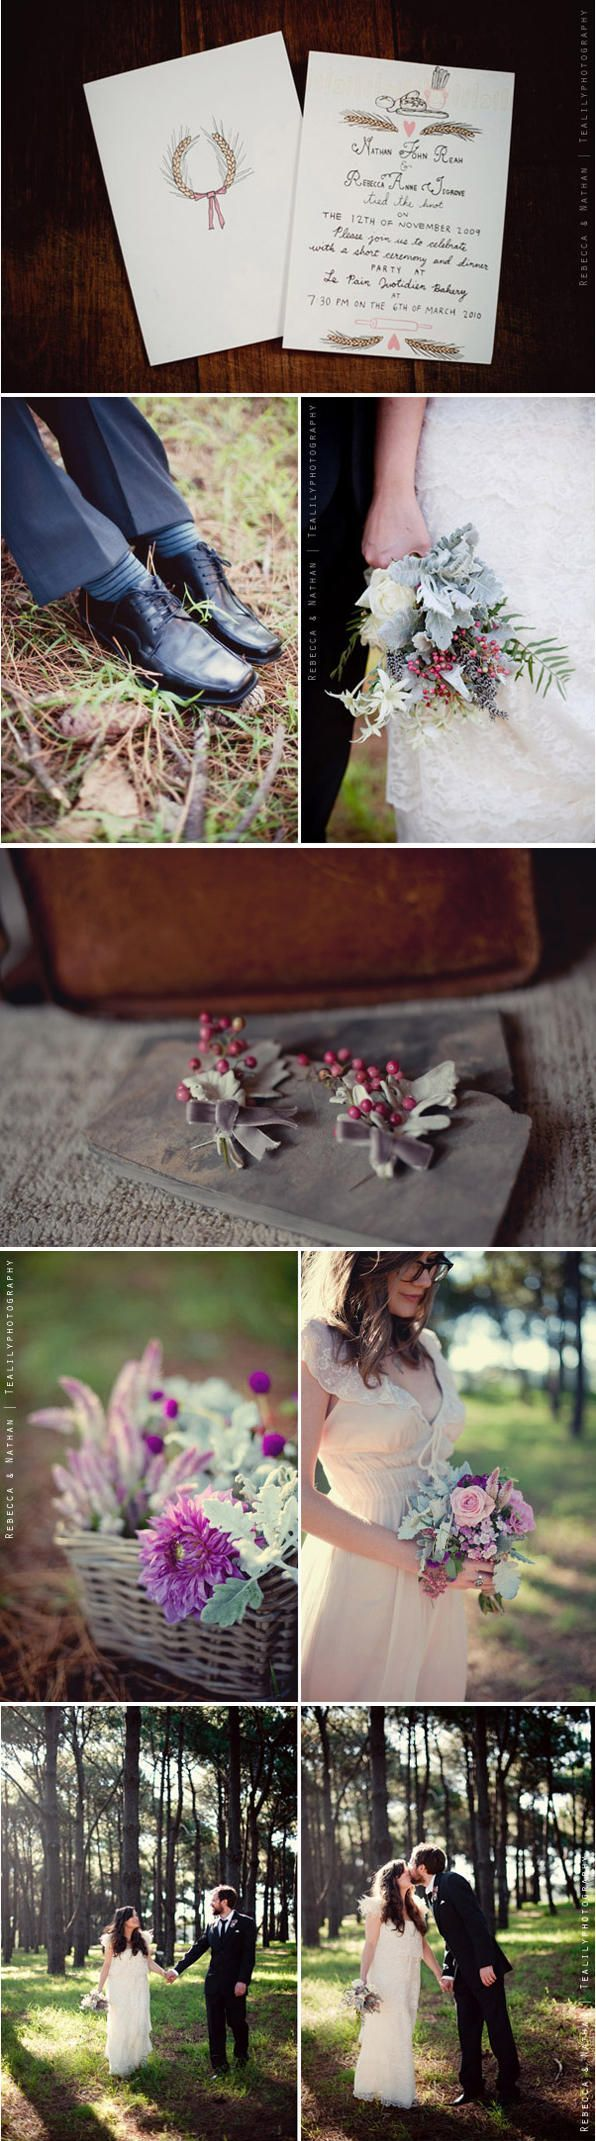 diy australia wedding